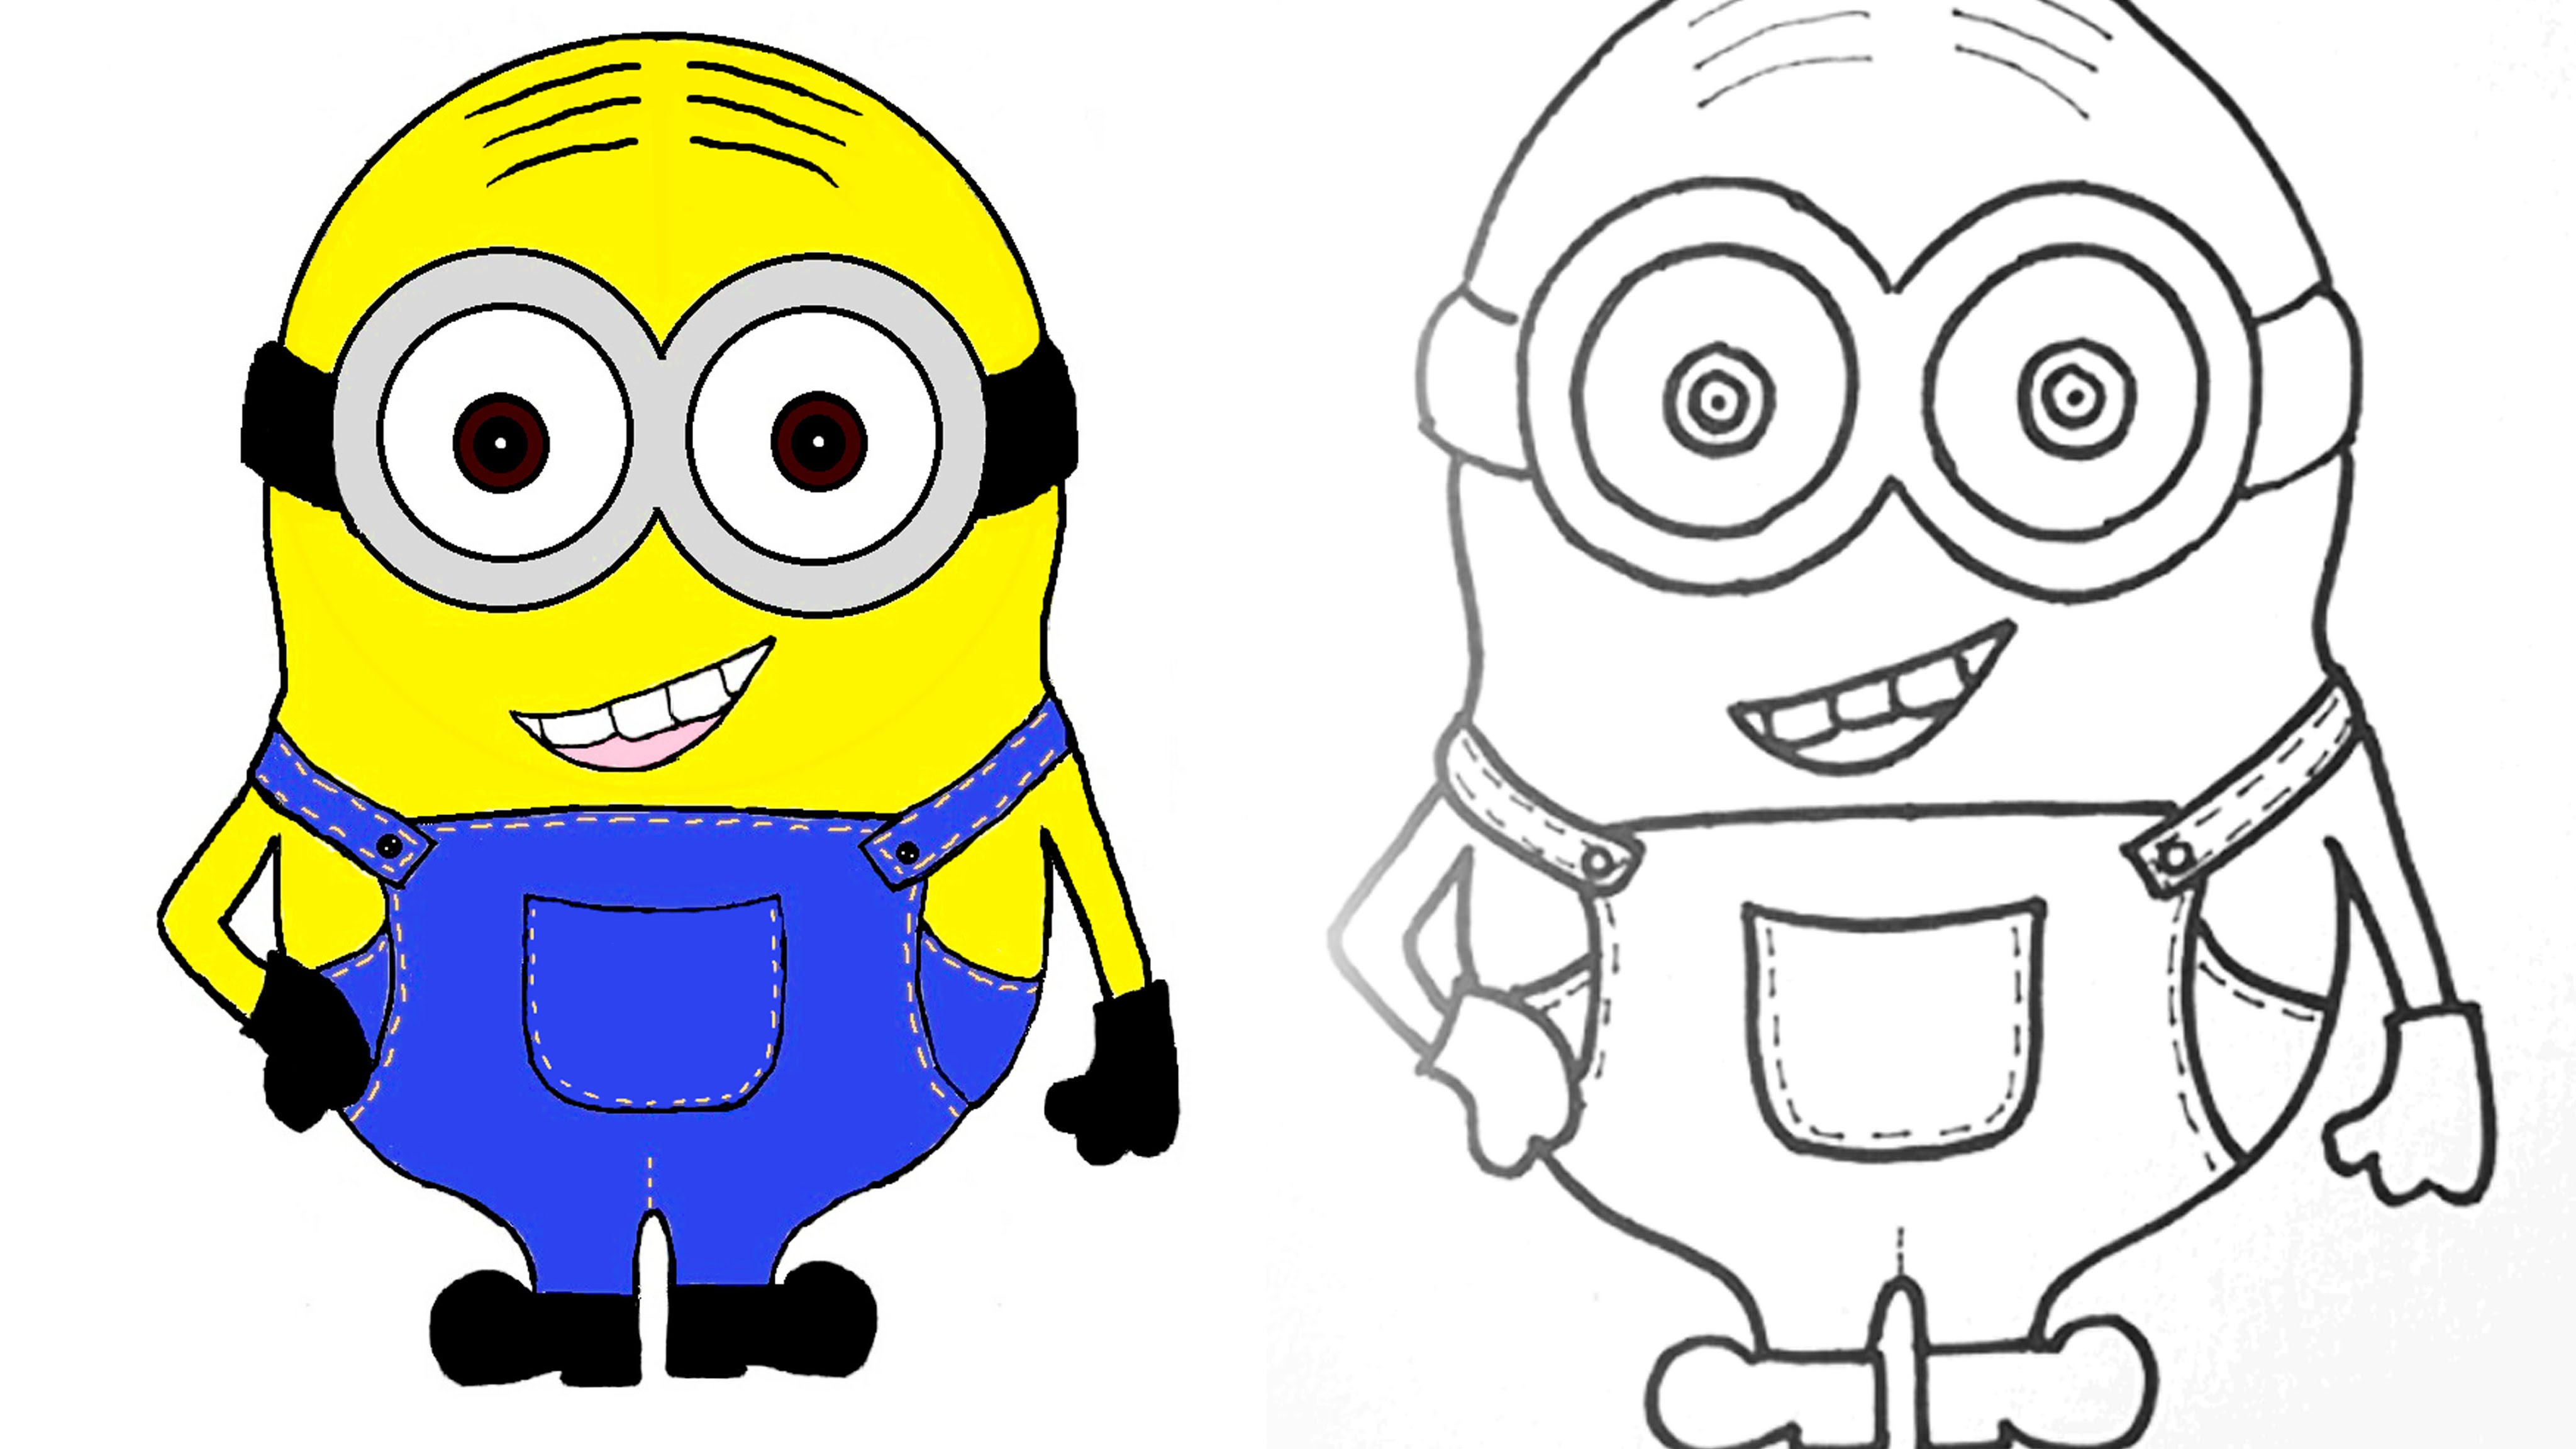 4096x2304 Minion How To Draw And Color A Minion Step By Step